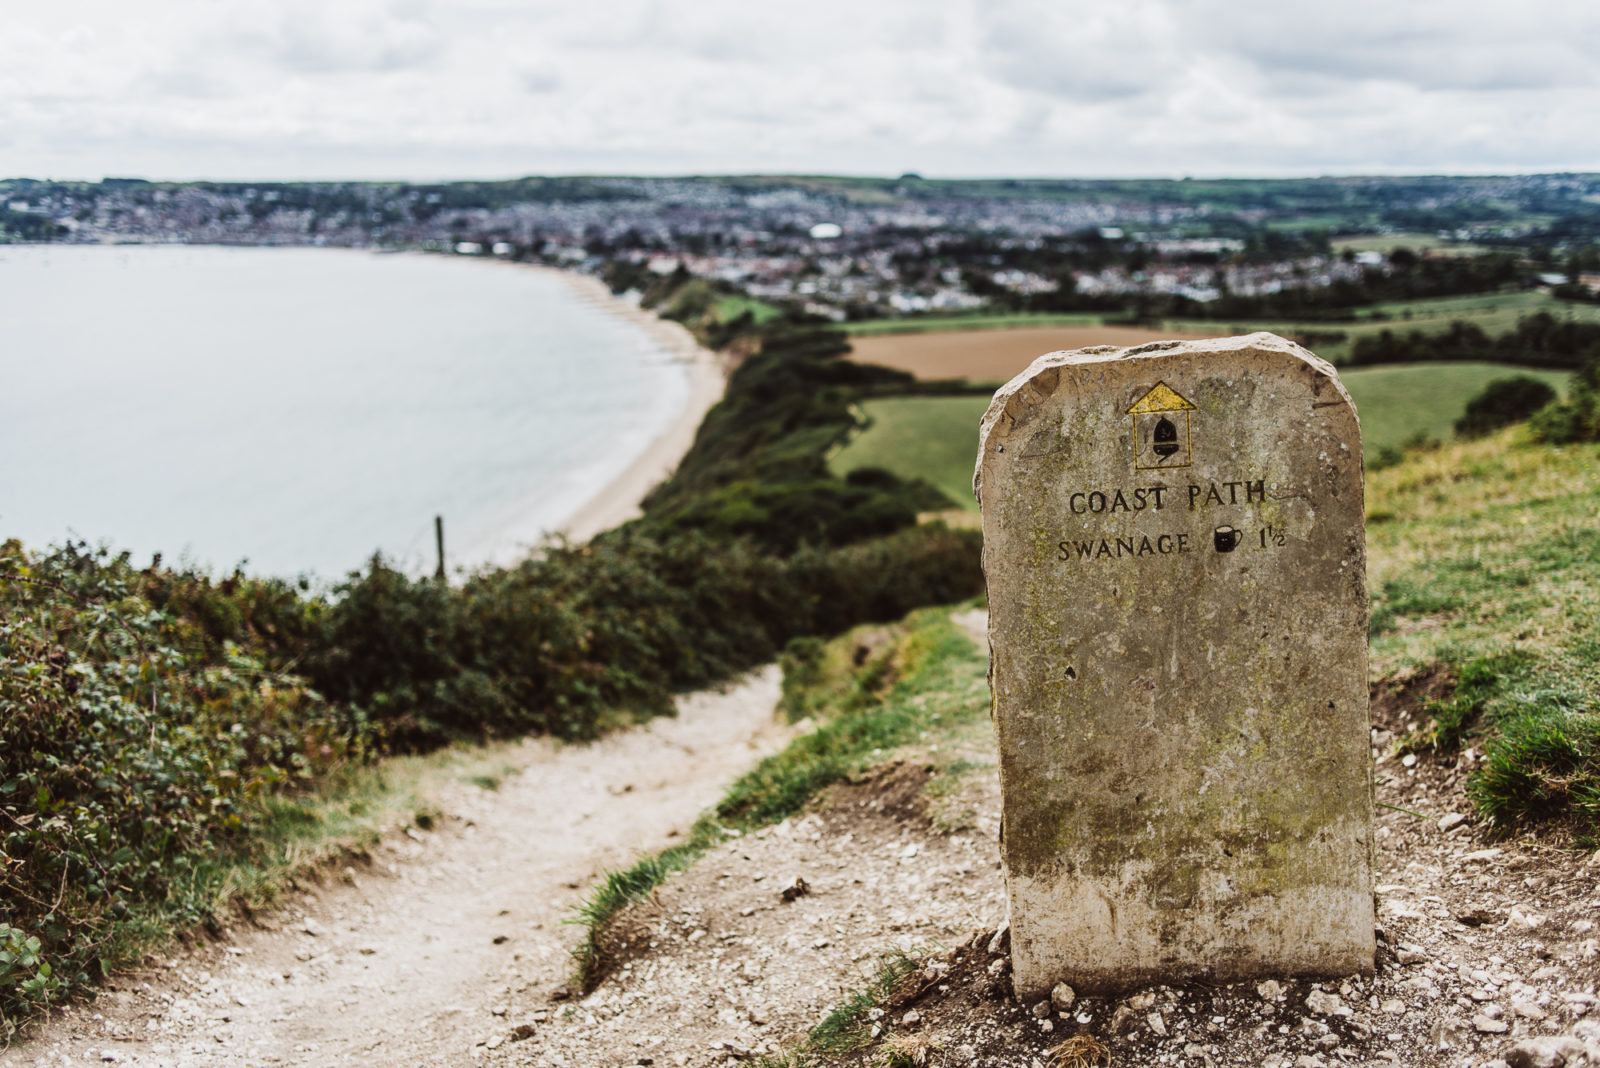 Coastpath to Swanage